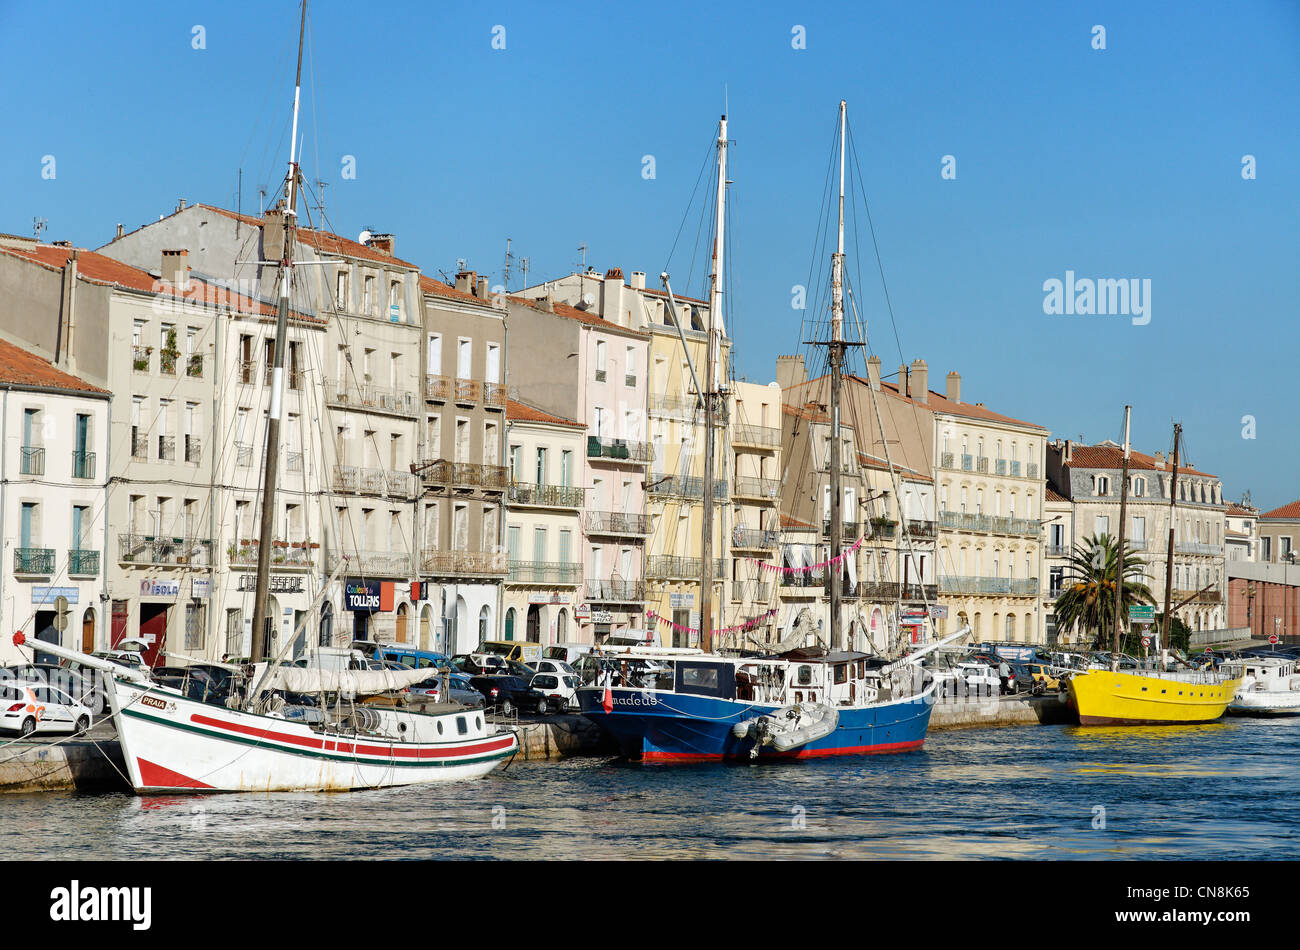 France, Herault, Sete, Lateral channel, two-masted tall ships on the dock of the Republic - Stock Image